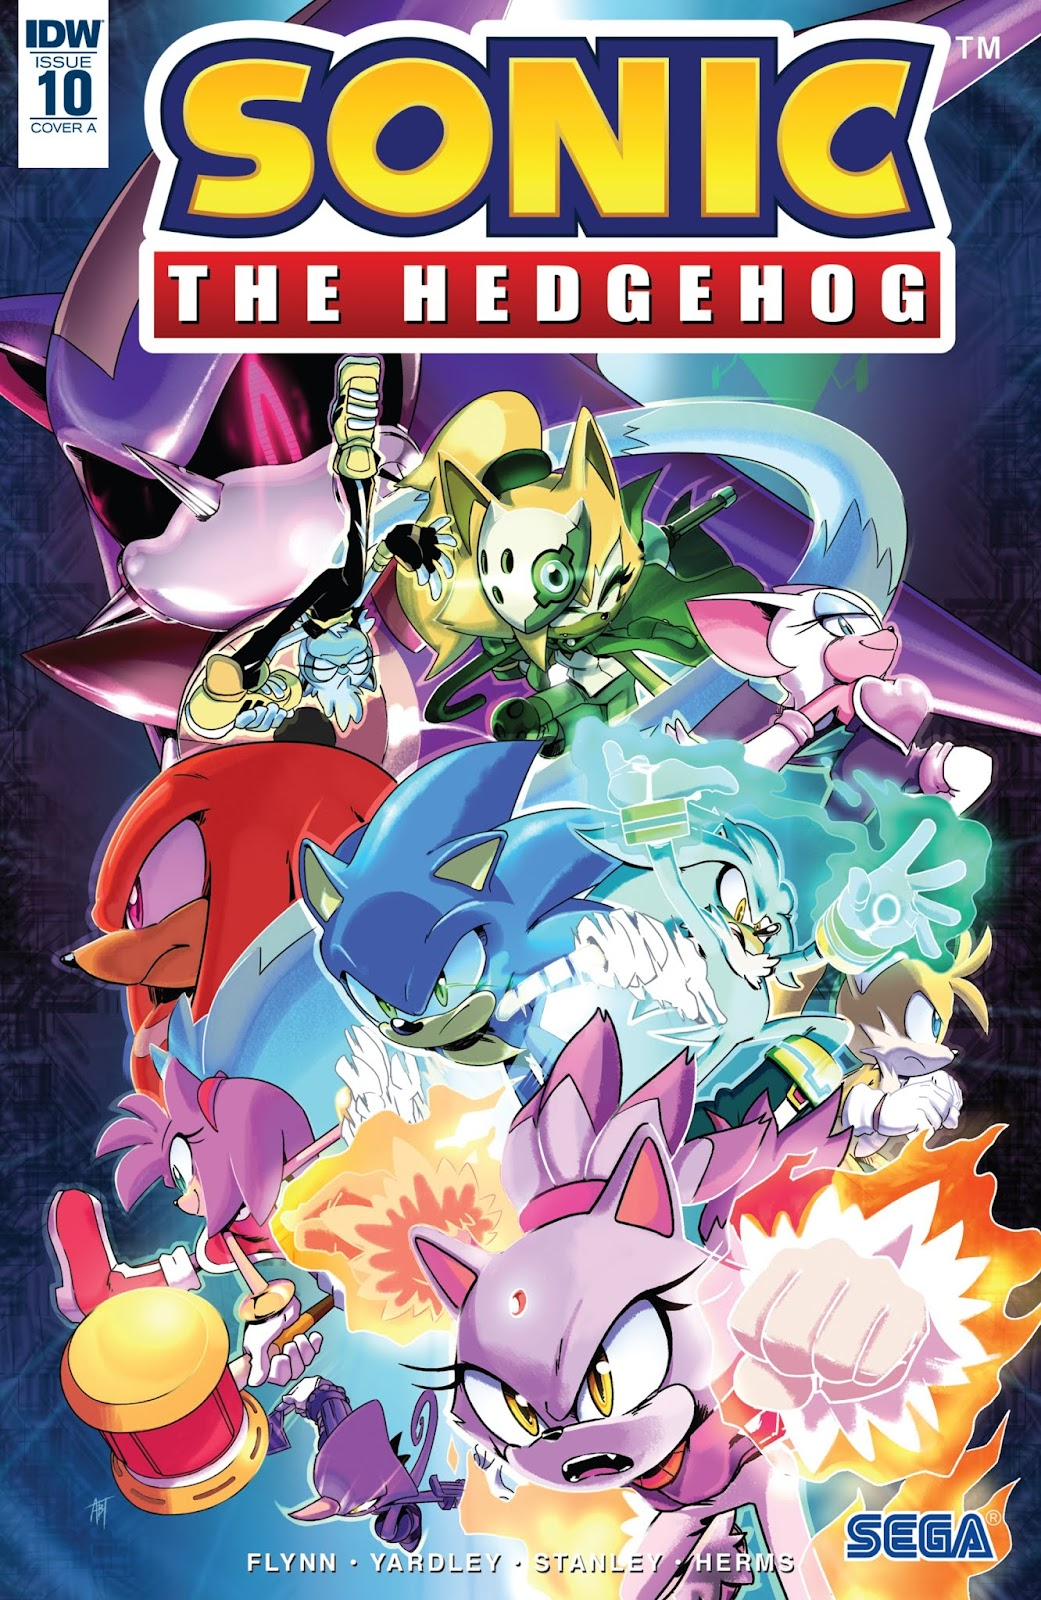 Sonic The Hedgehog Idw Comic Book Tv Tropes